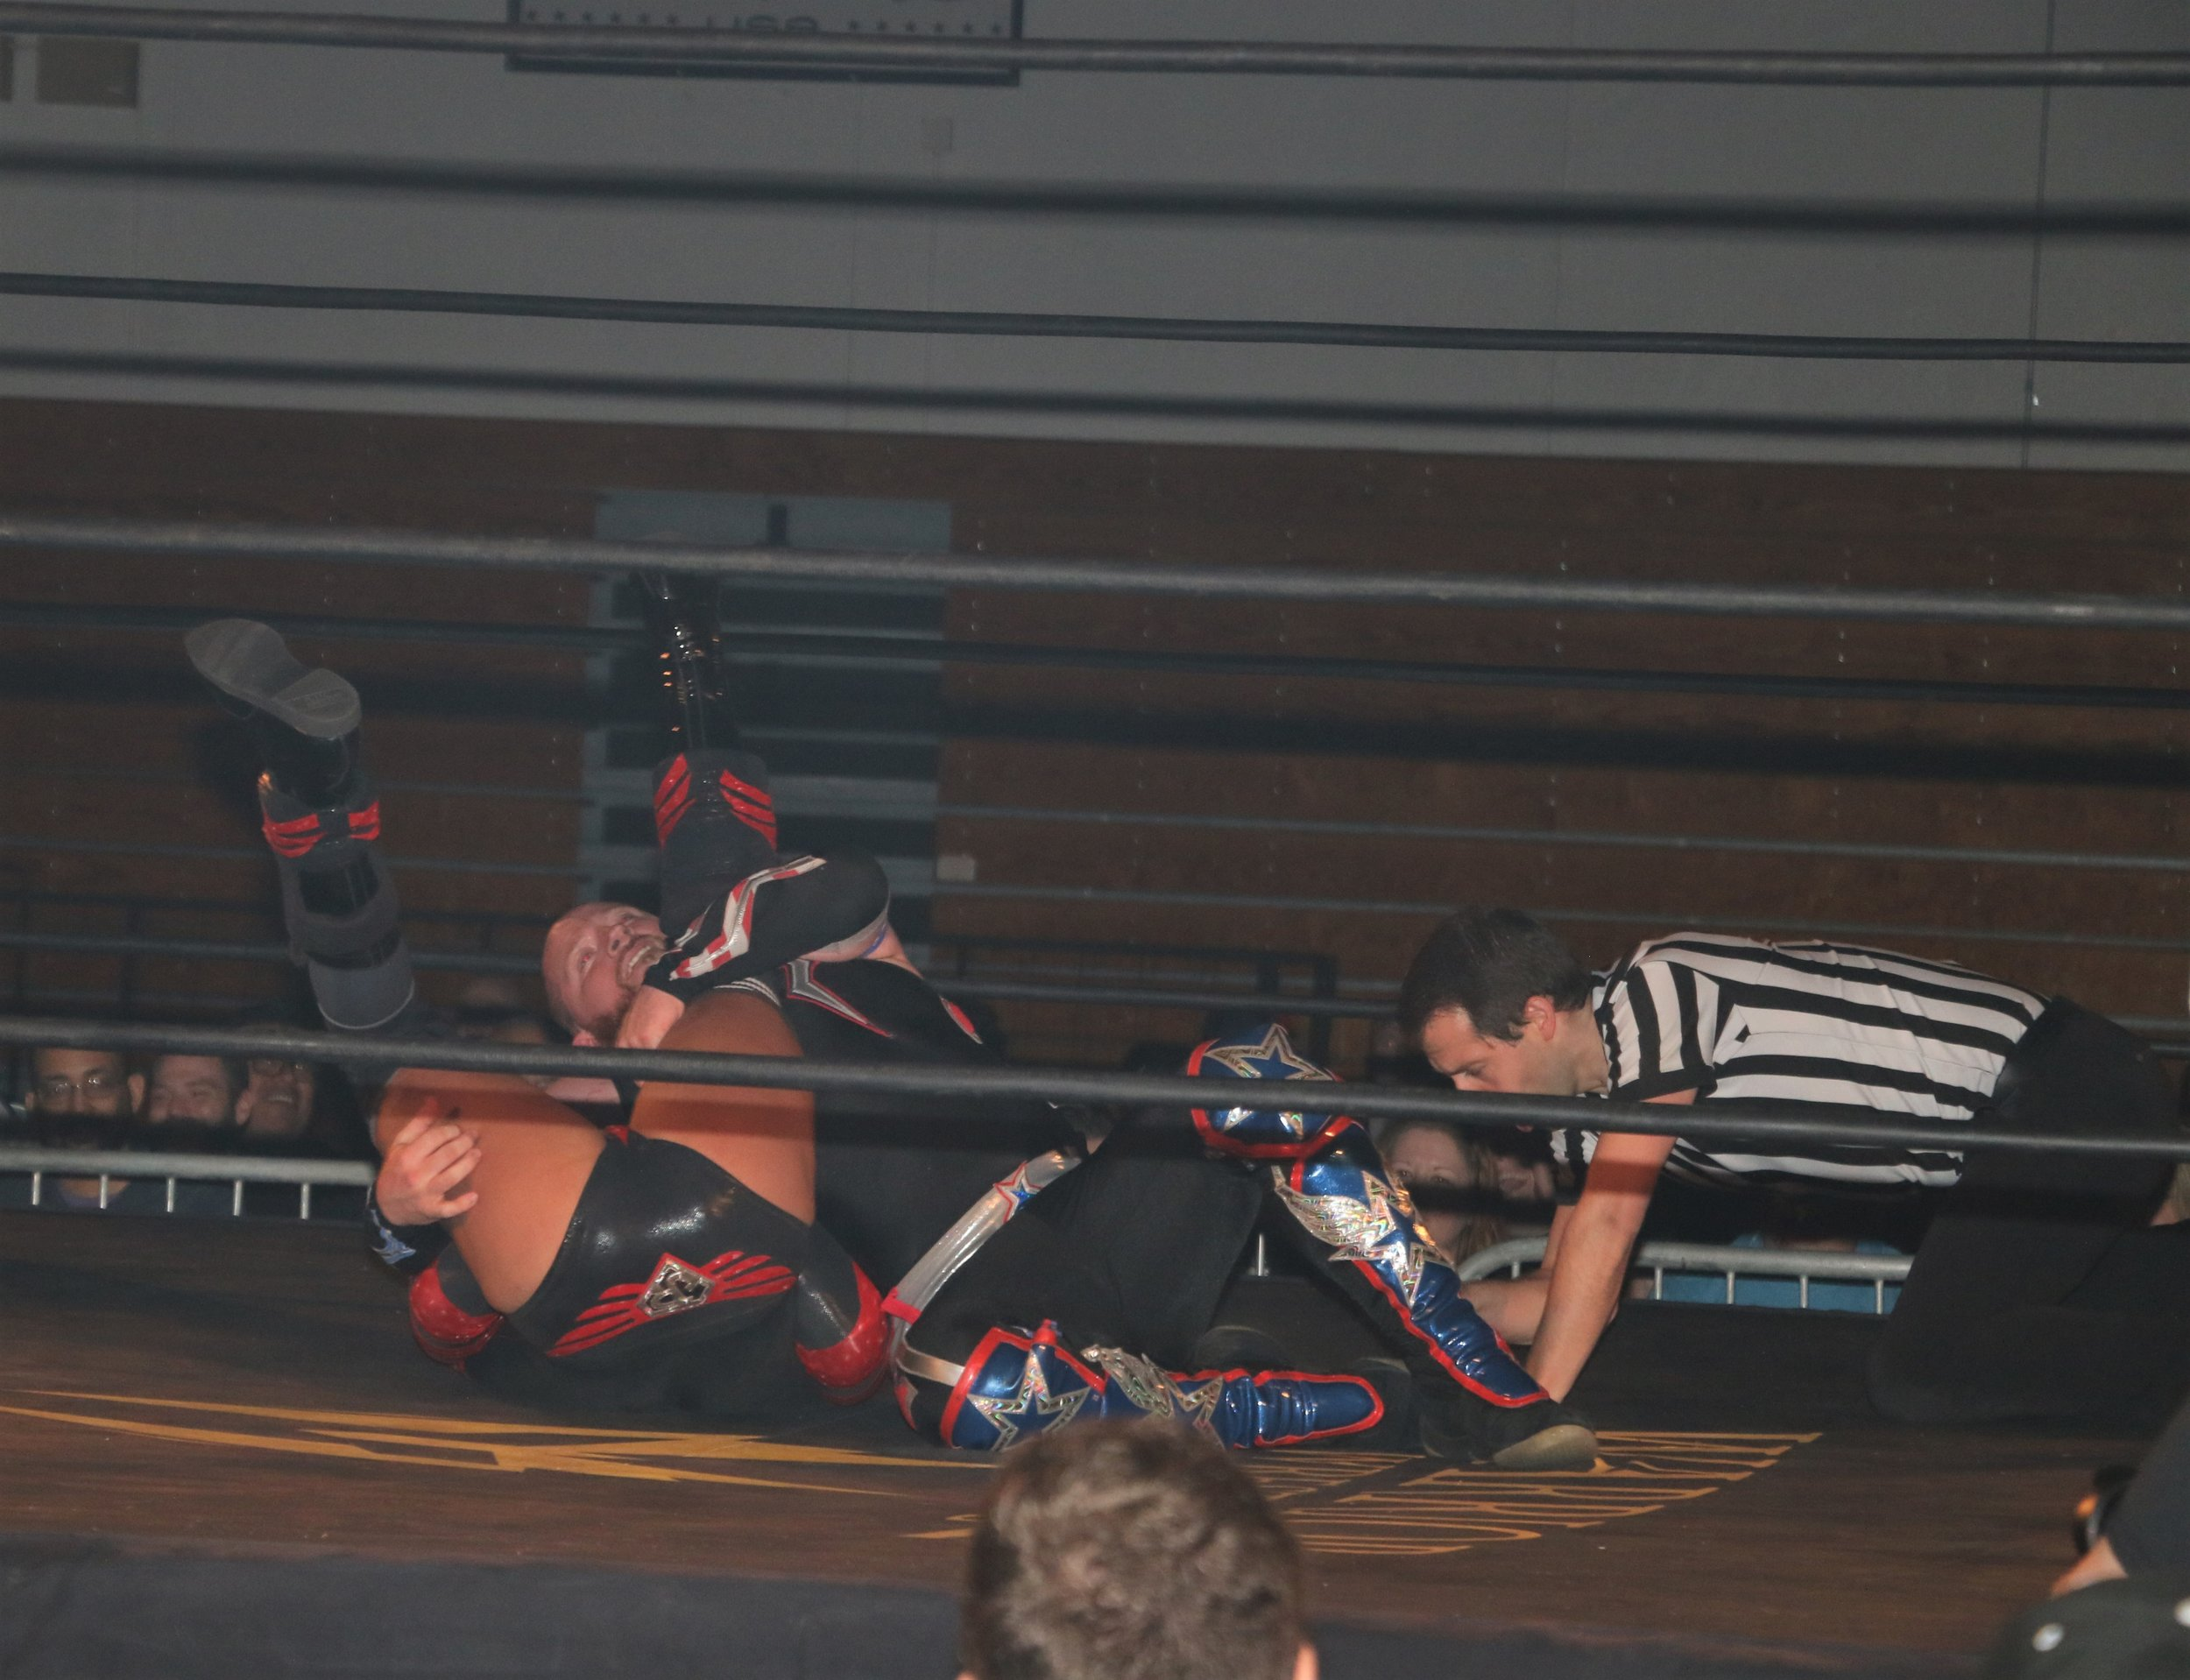 Referee Nate Speckman makes the count as Gringo Loco attmpts to pin Volador Jr.